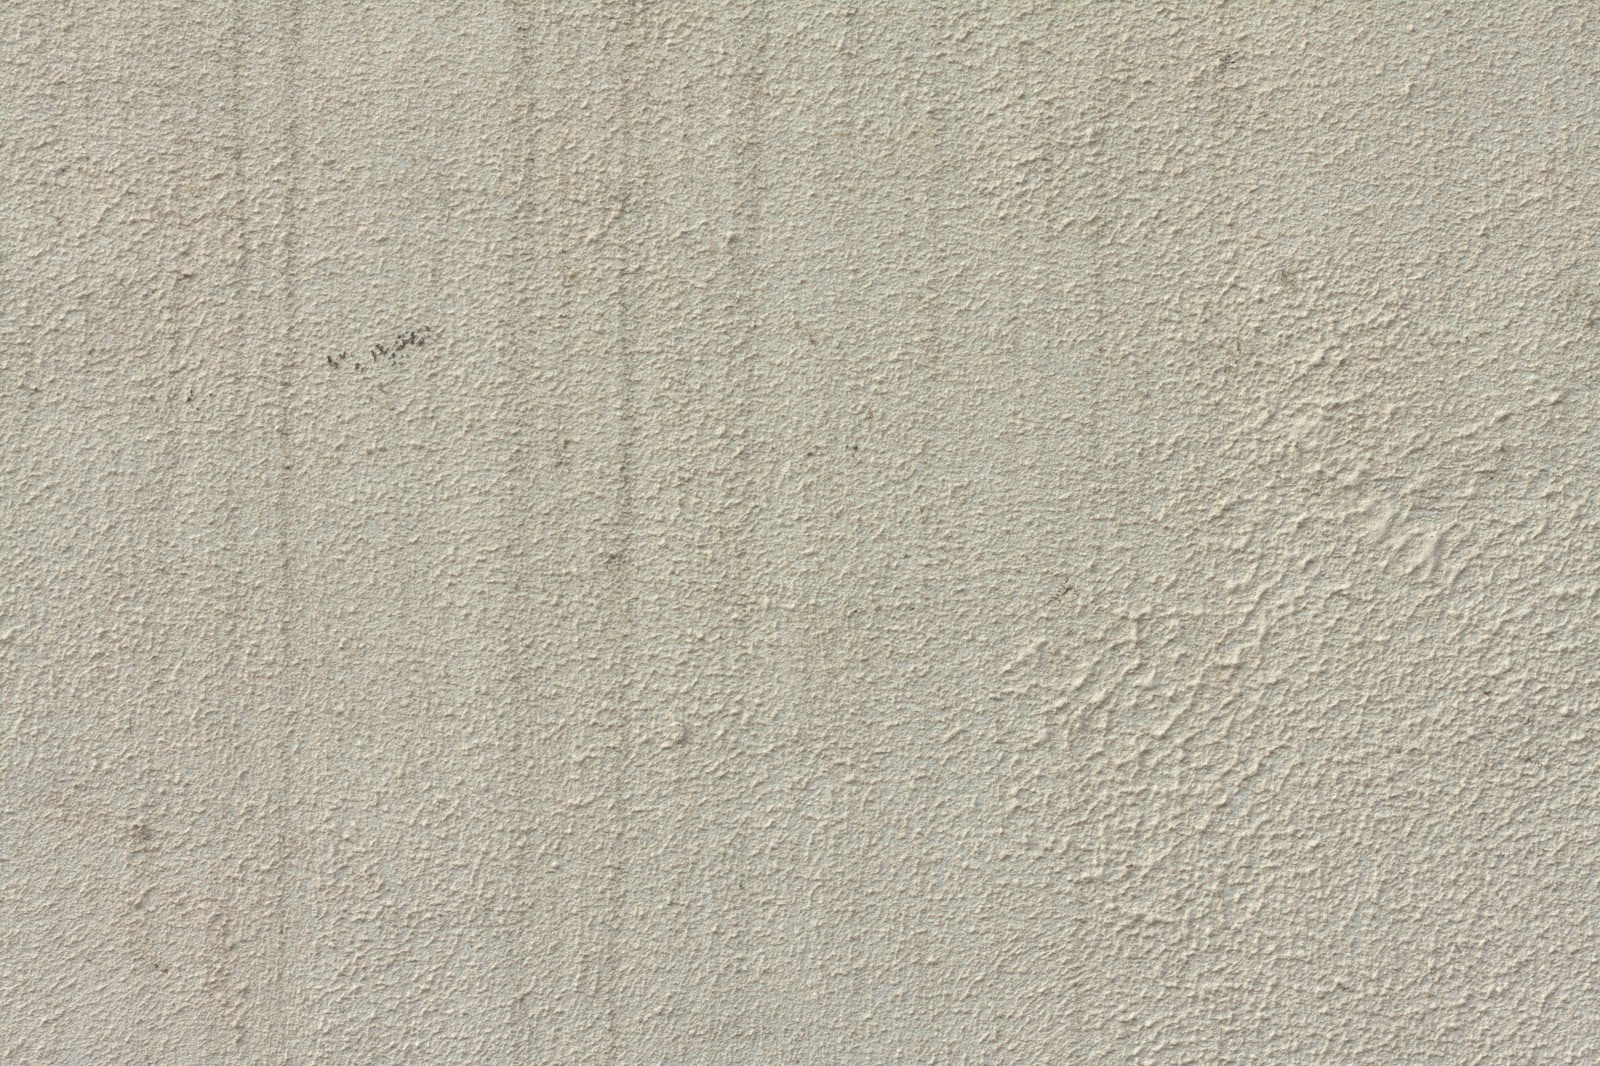 Stucco wall dirt lines feb_2015_2 texture 4770x3178